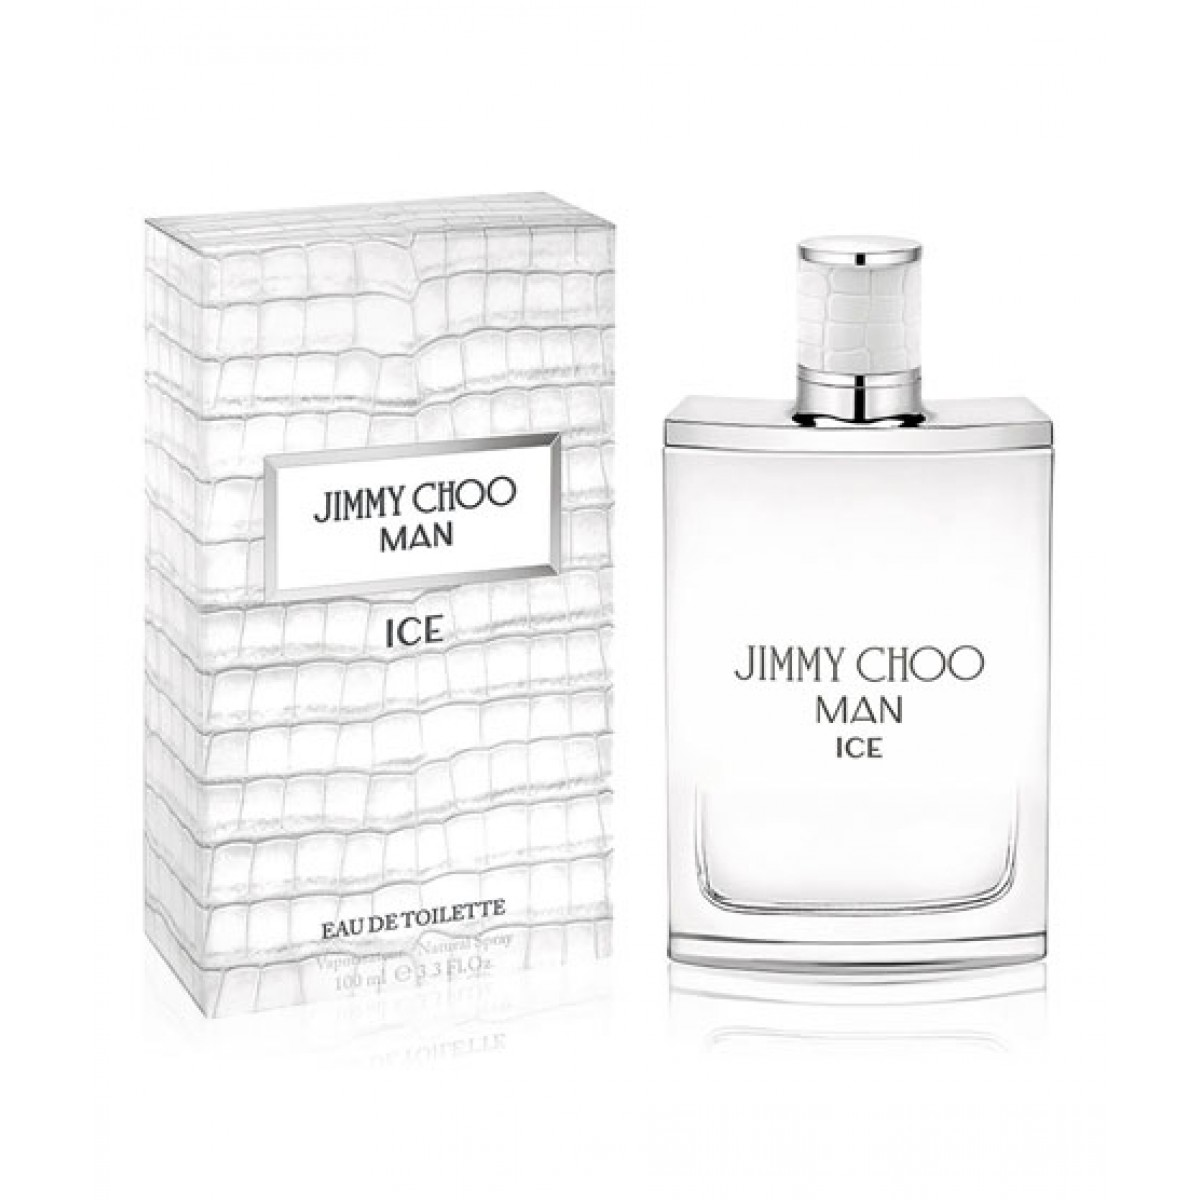 abddbbc3d268 Jimmy Choo Man Ice EDT Perfume Price in Pakistan